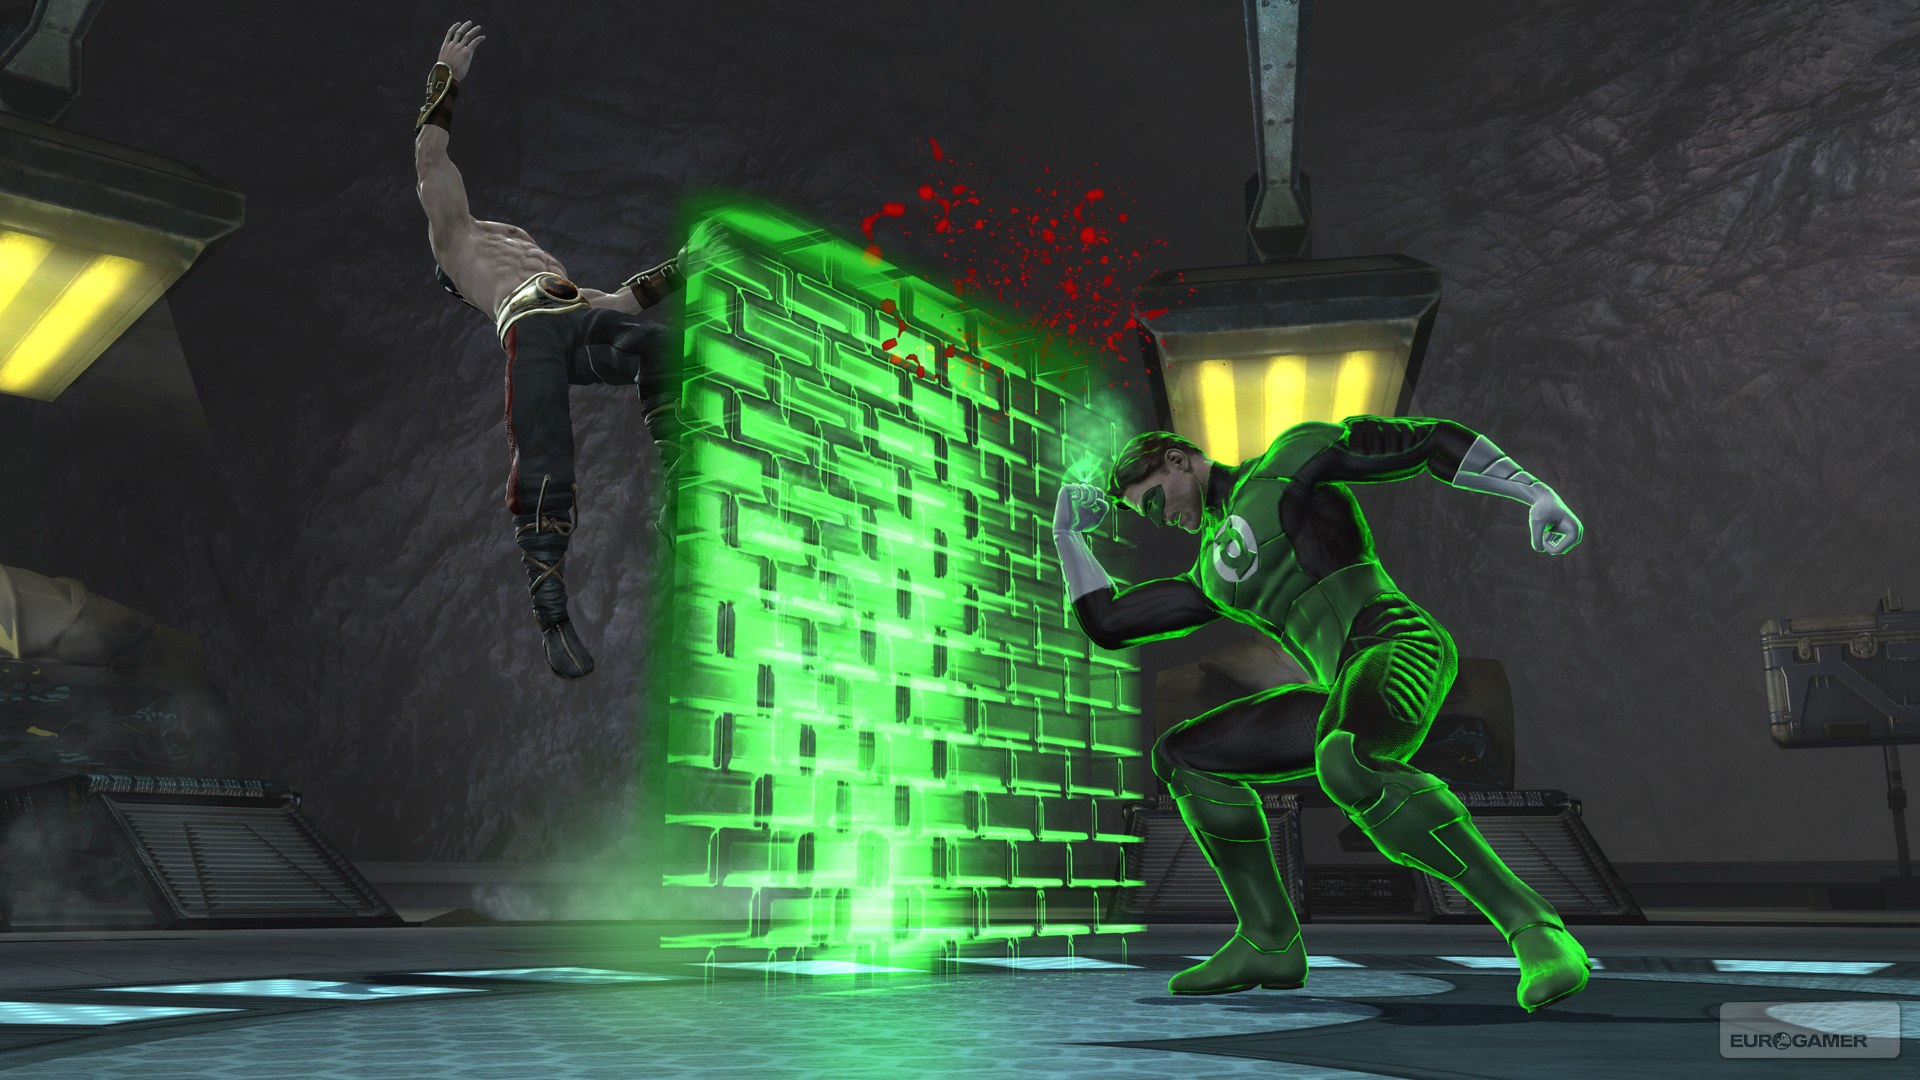 Dc universe online xbox 360 release date in Brisbane